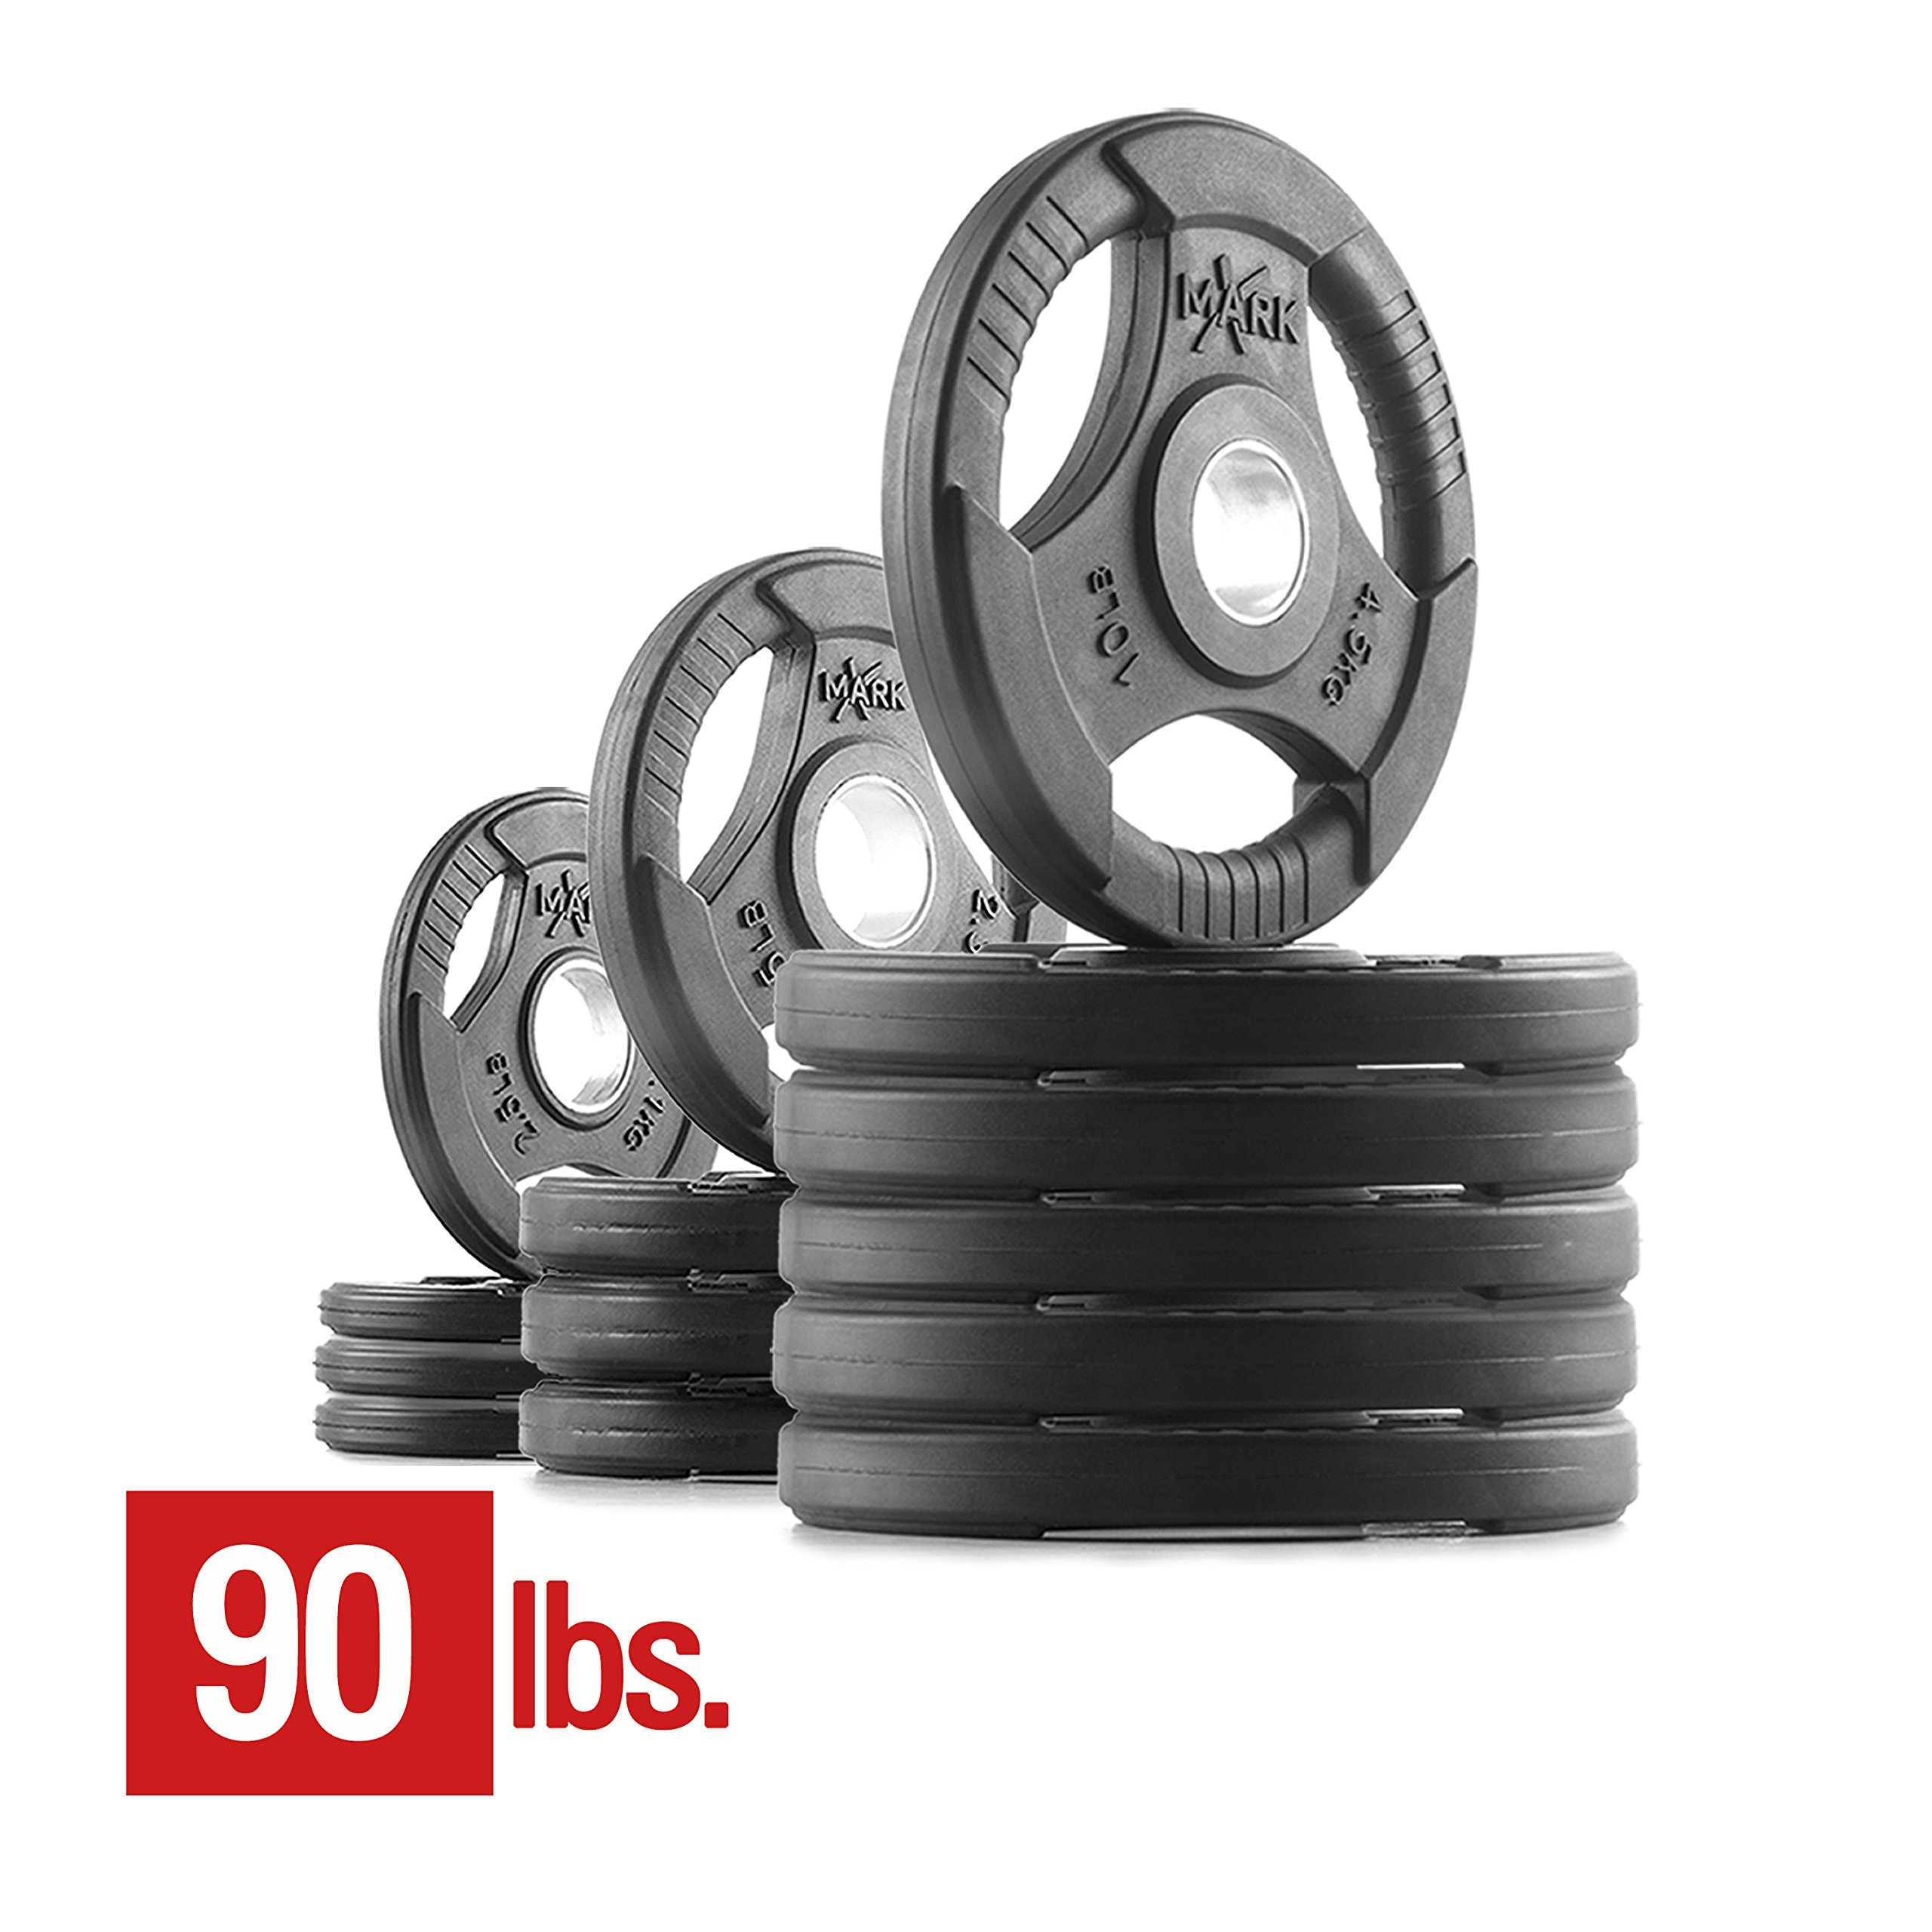 XMark Premium Quality Rubber Coated Tri-grip Olympic Plate Weights - 90 lb. Set by XMark Fitness